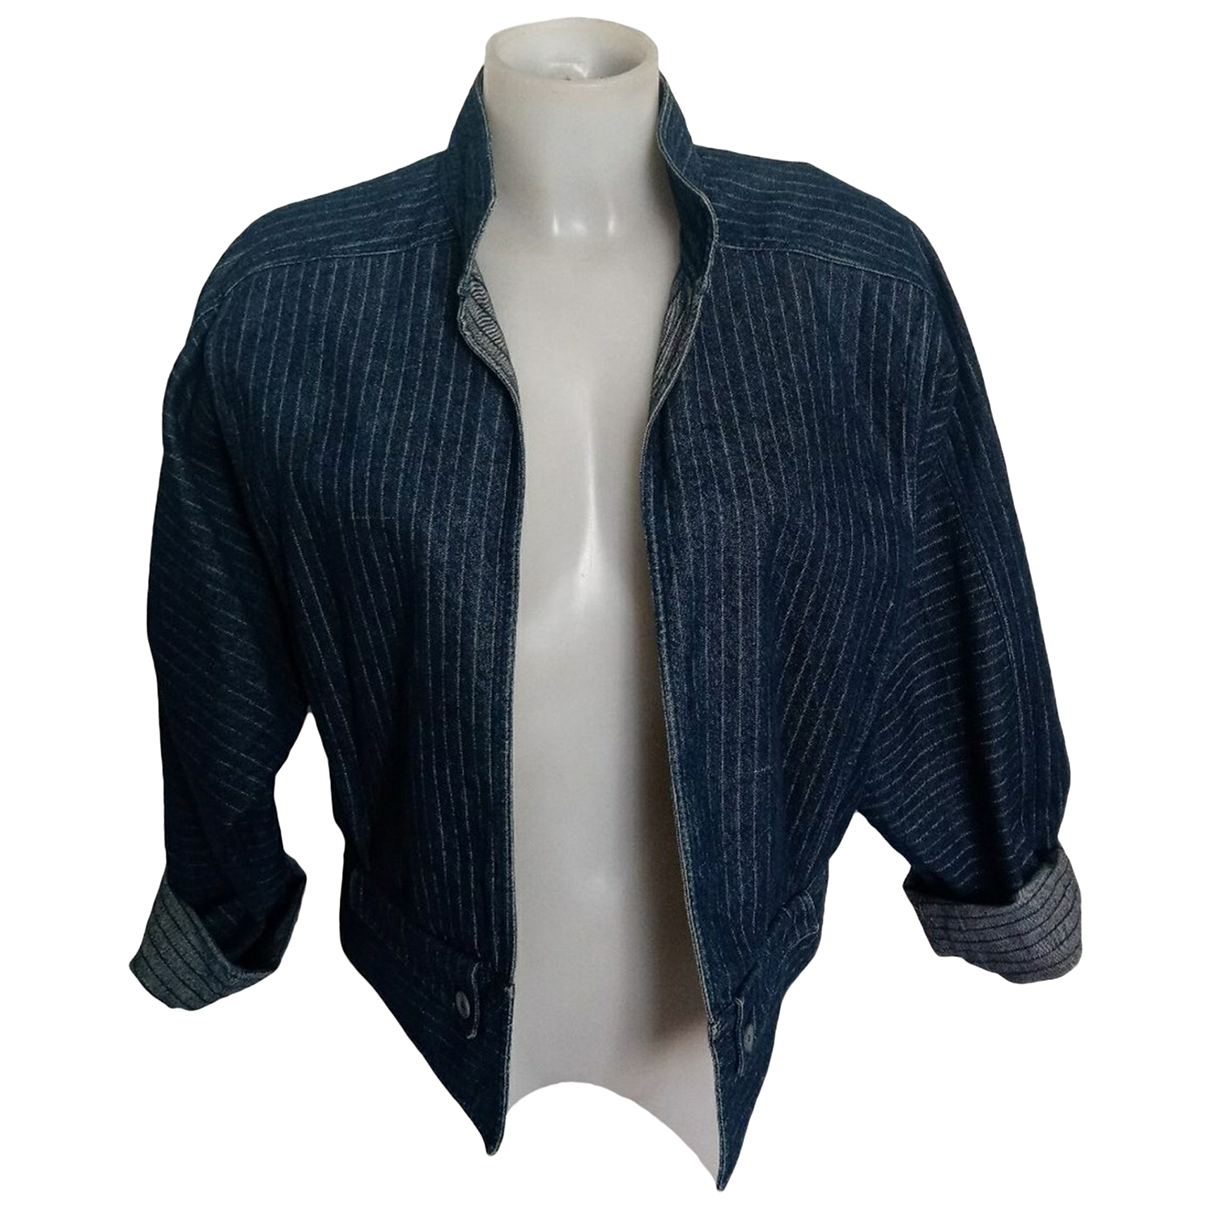 Fendi \N Blue Cotton jacket for Women 42 IT